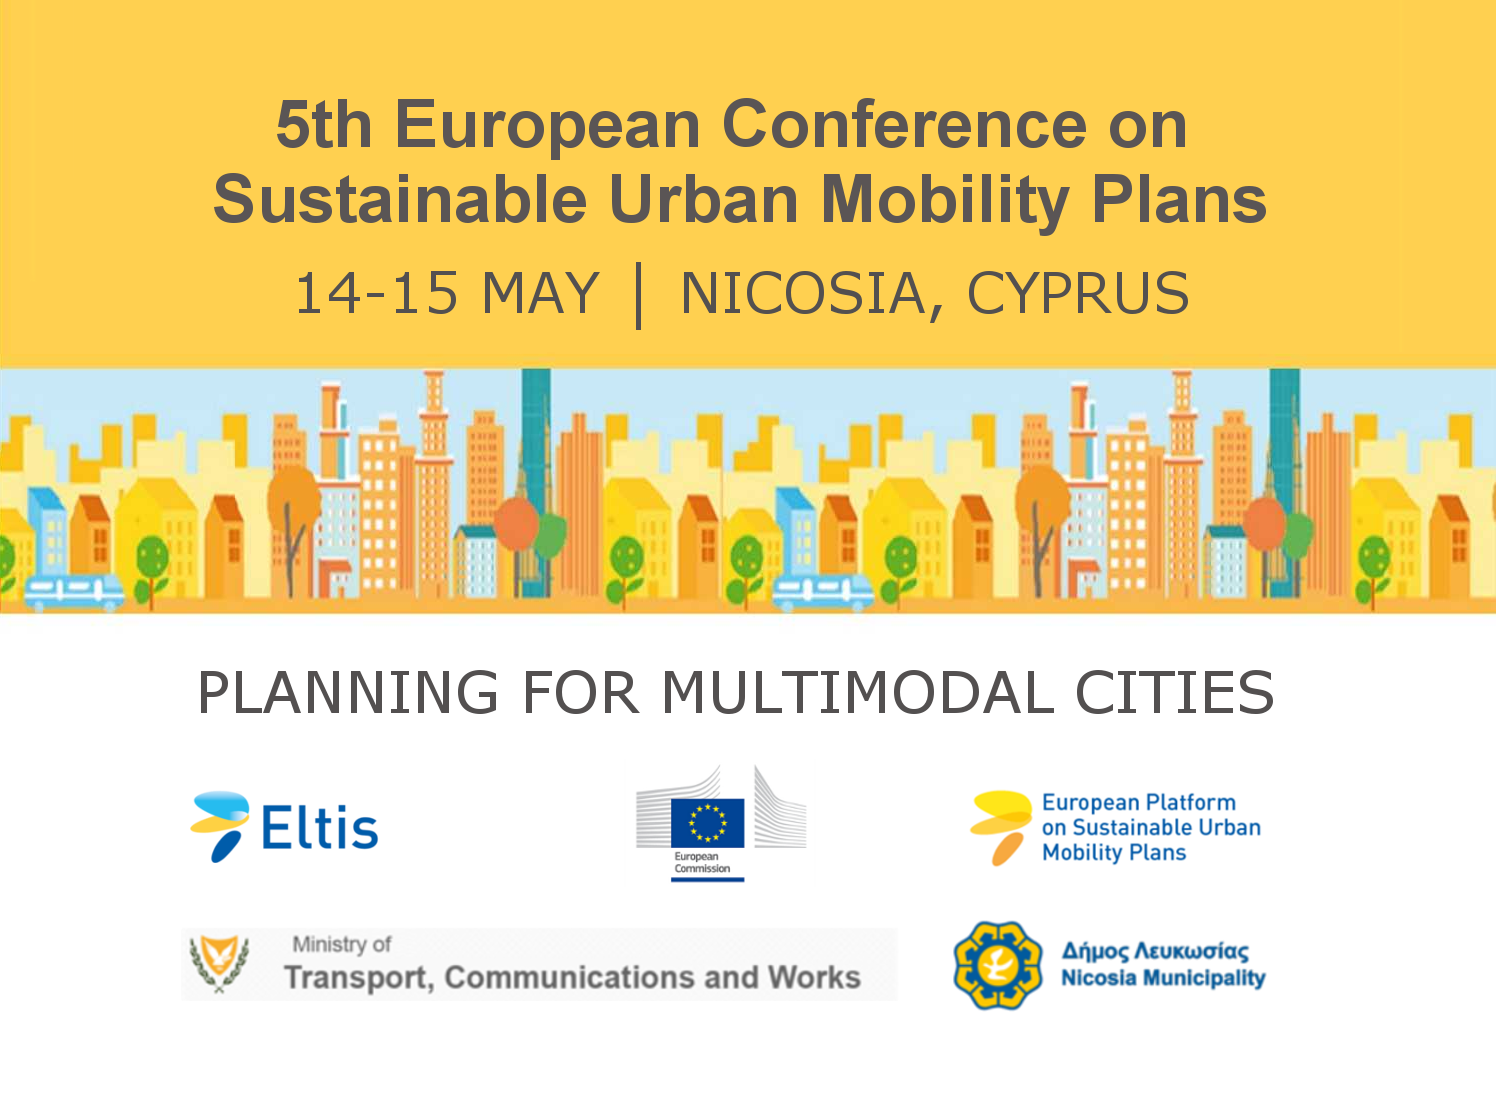 5th European Conference on Sustainable Urban Mobility Plans (SUMPs